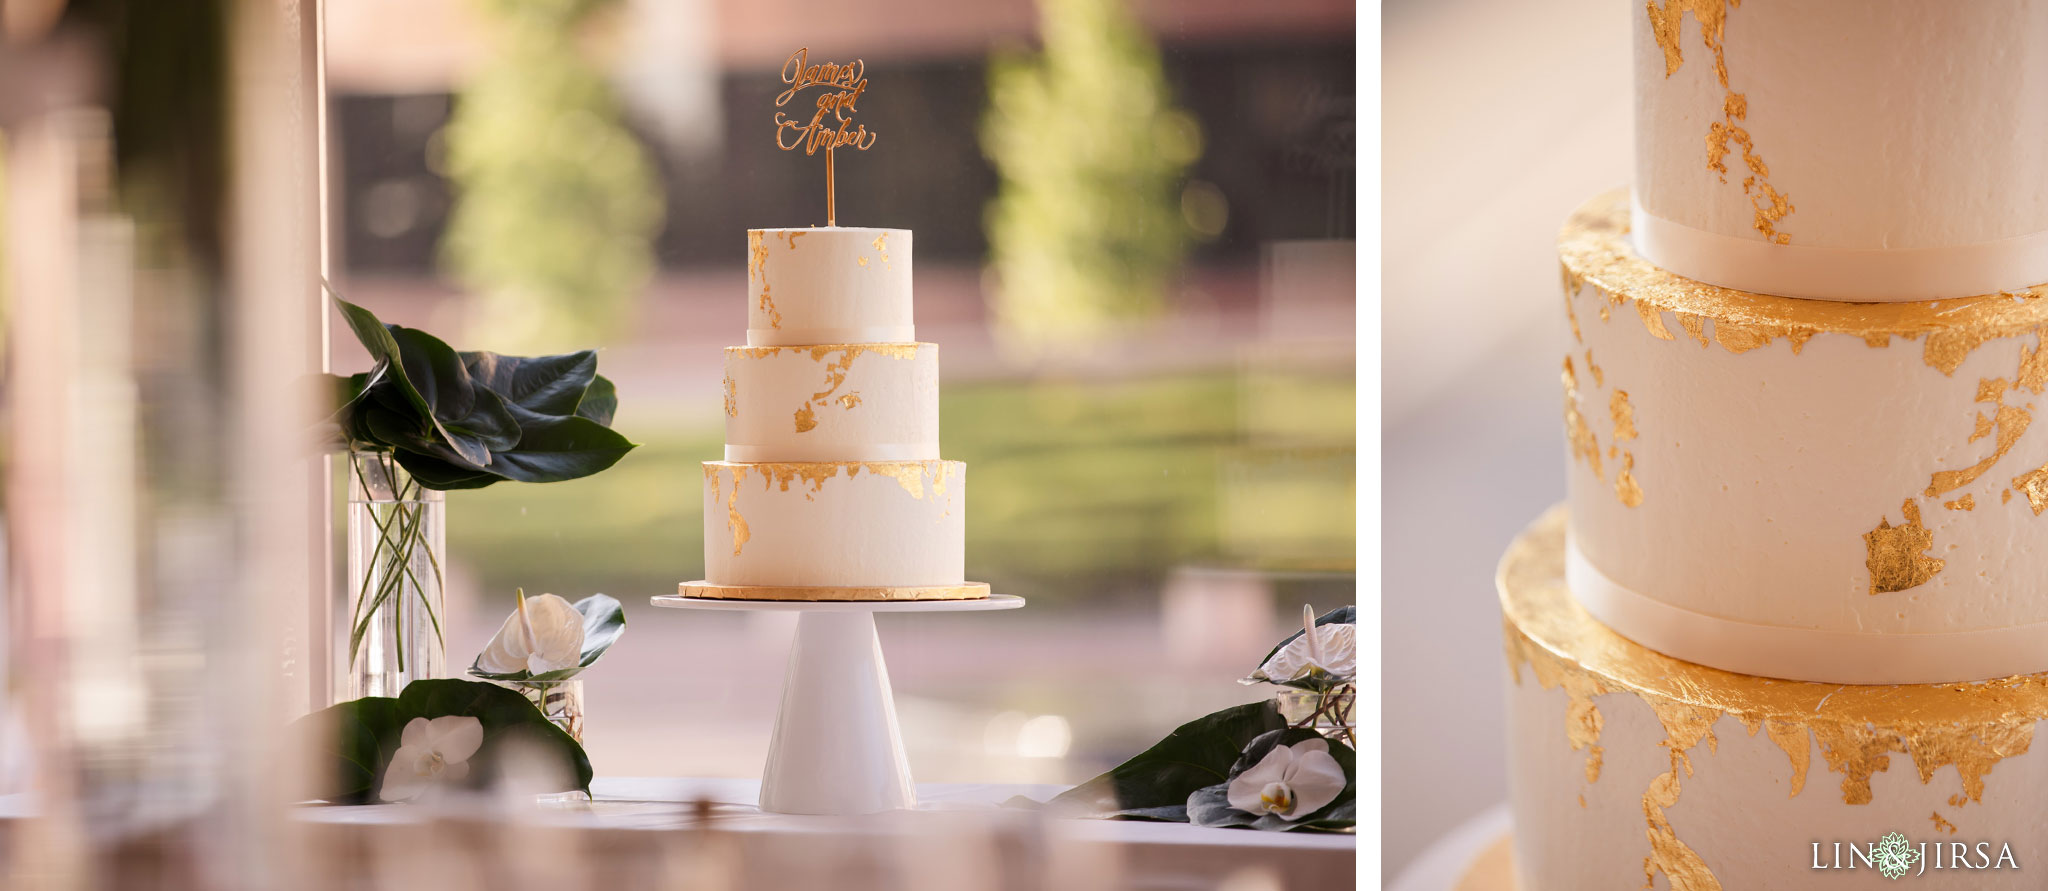 34 segerstrom center for the arts costa mesa wedding photography